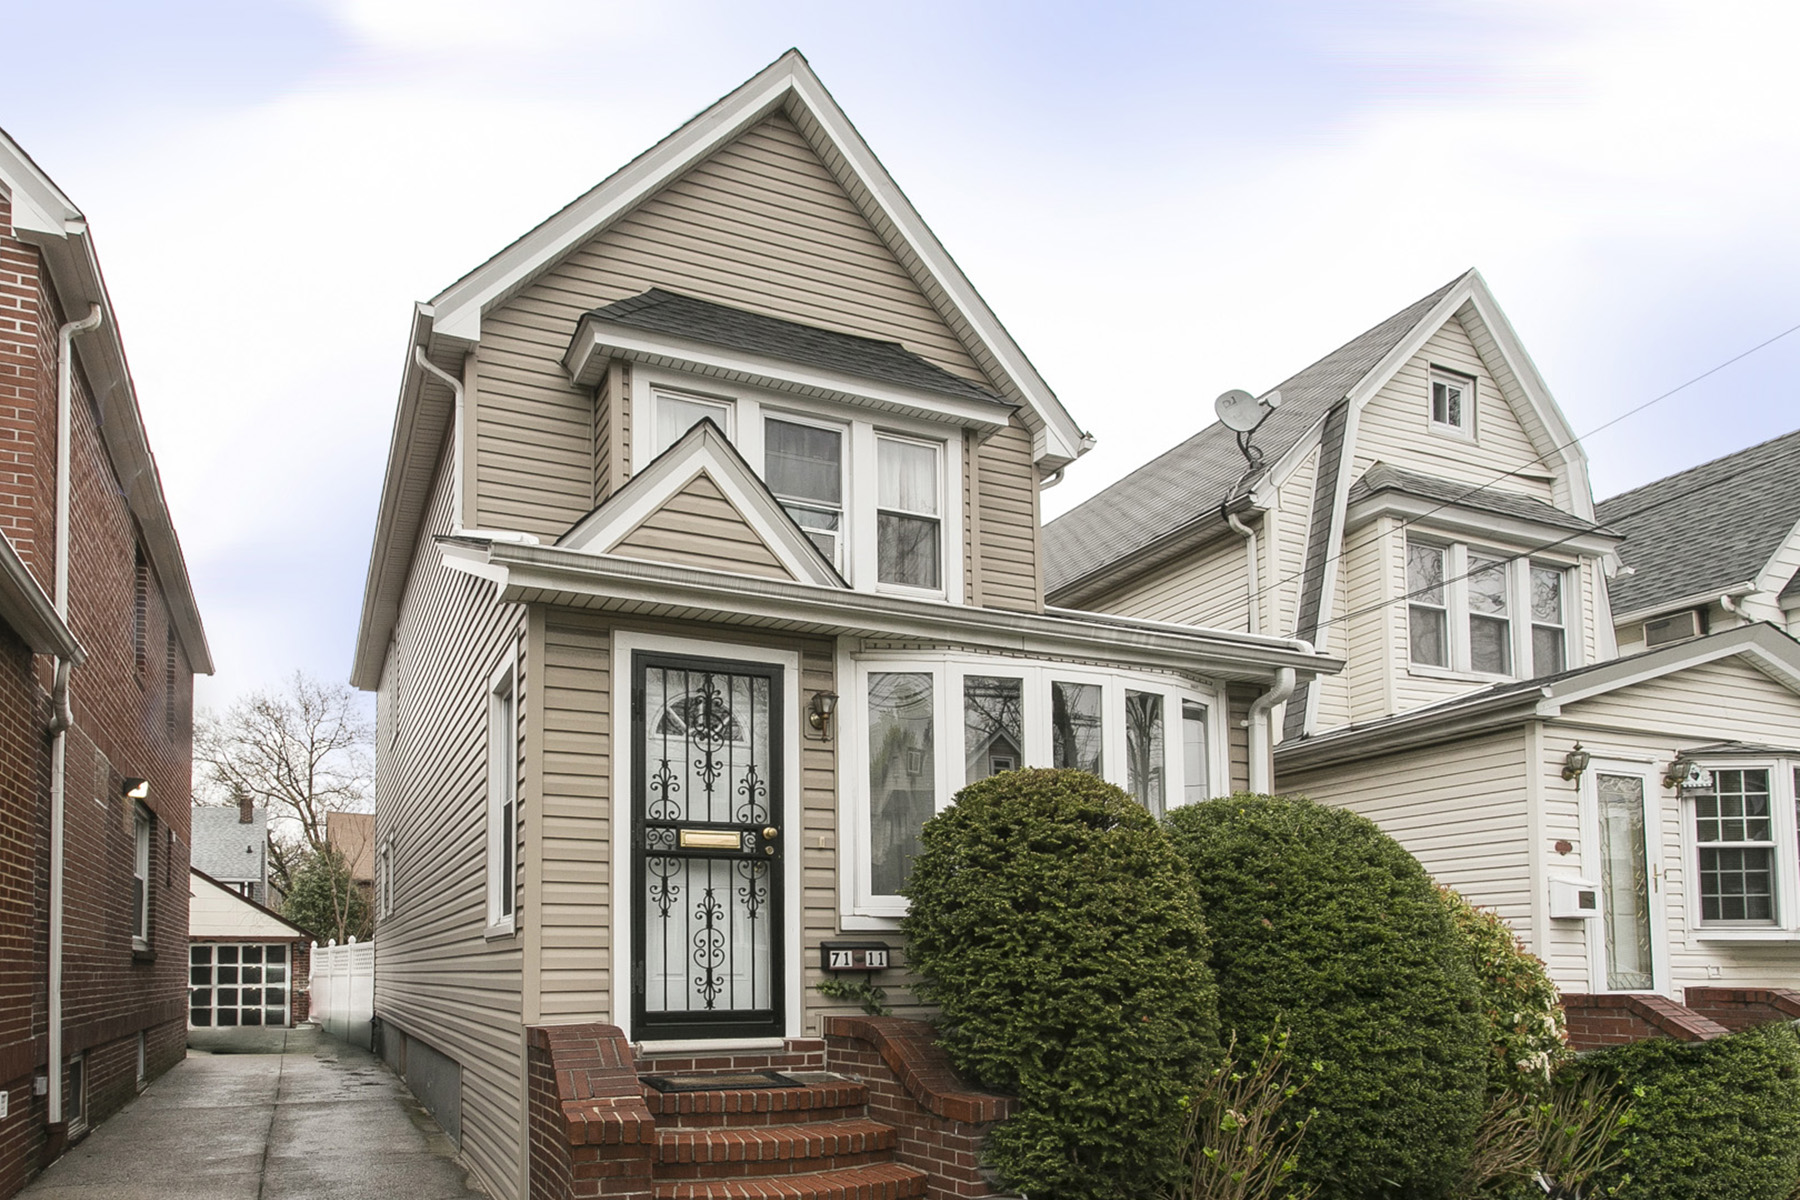 """Single Family Home for Rent at """"3 BEDROOM DETACHED FRAME HOUSE"""" 71-11 Manse Street, Forest Hills, New York 11375 United States"""